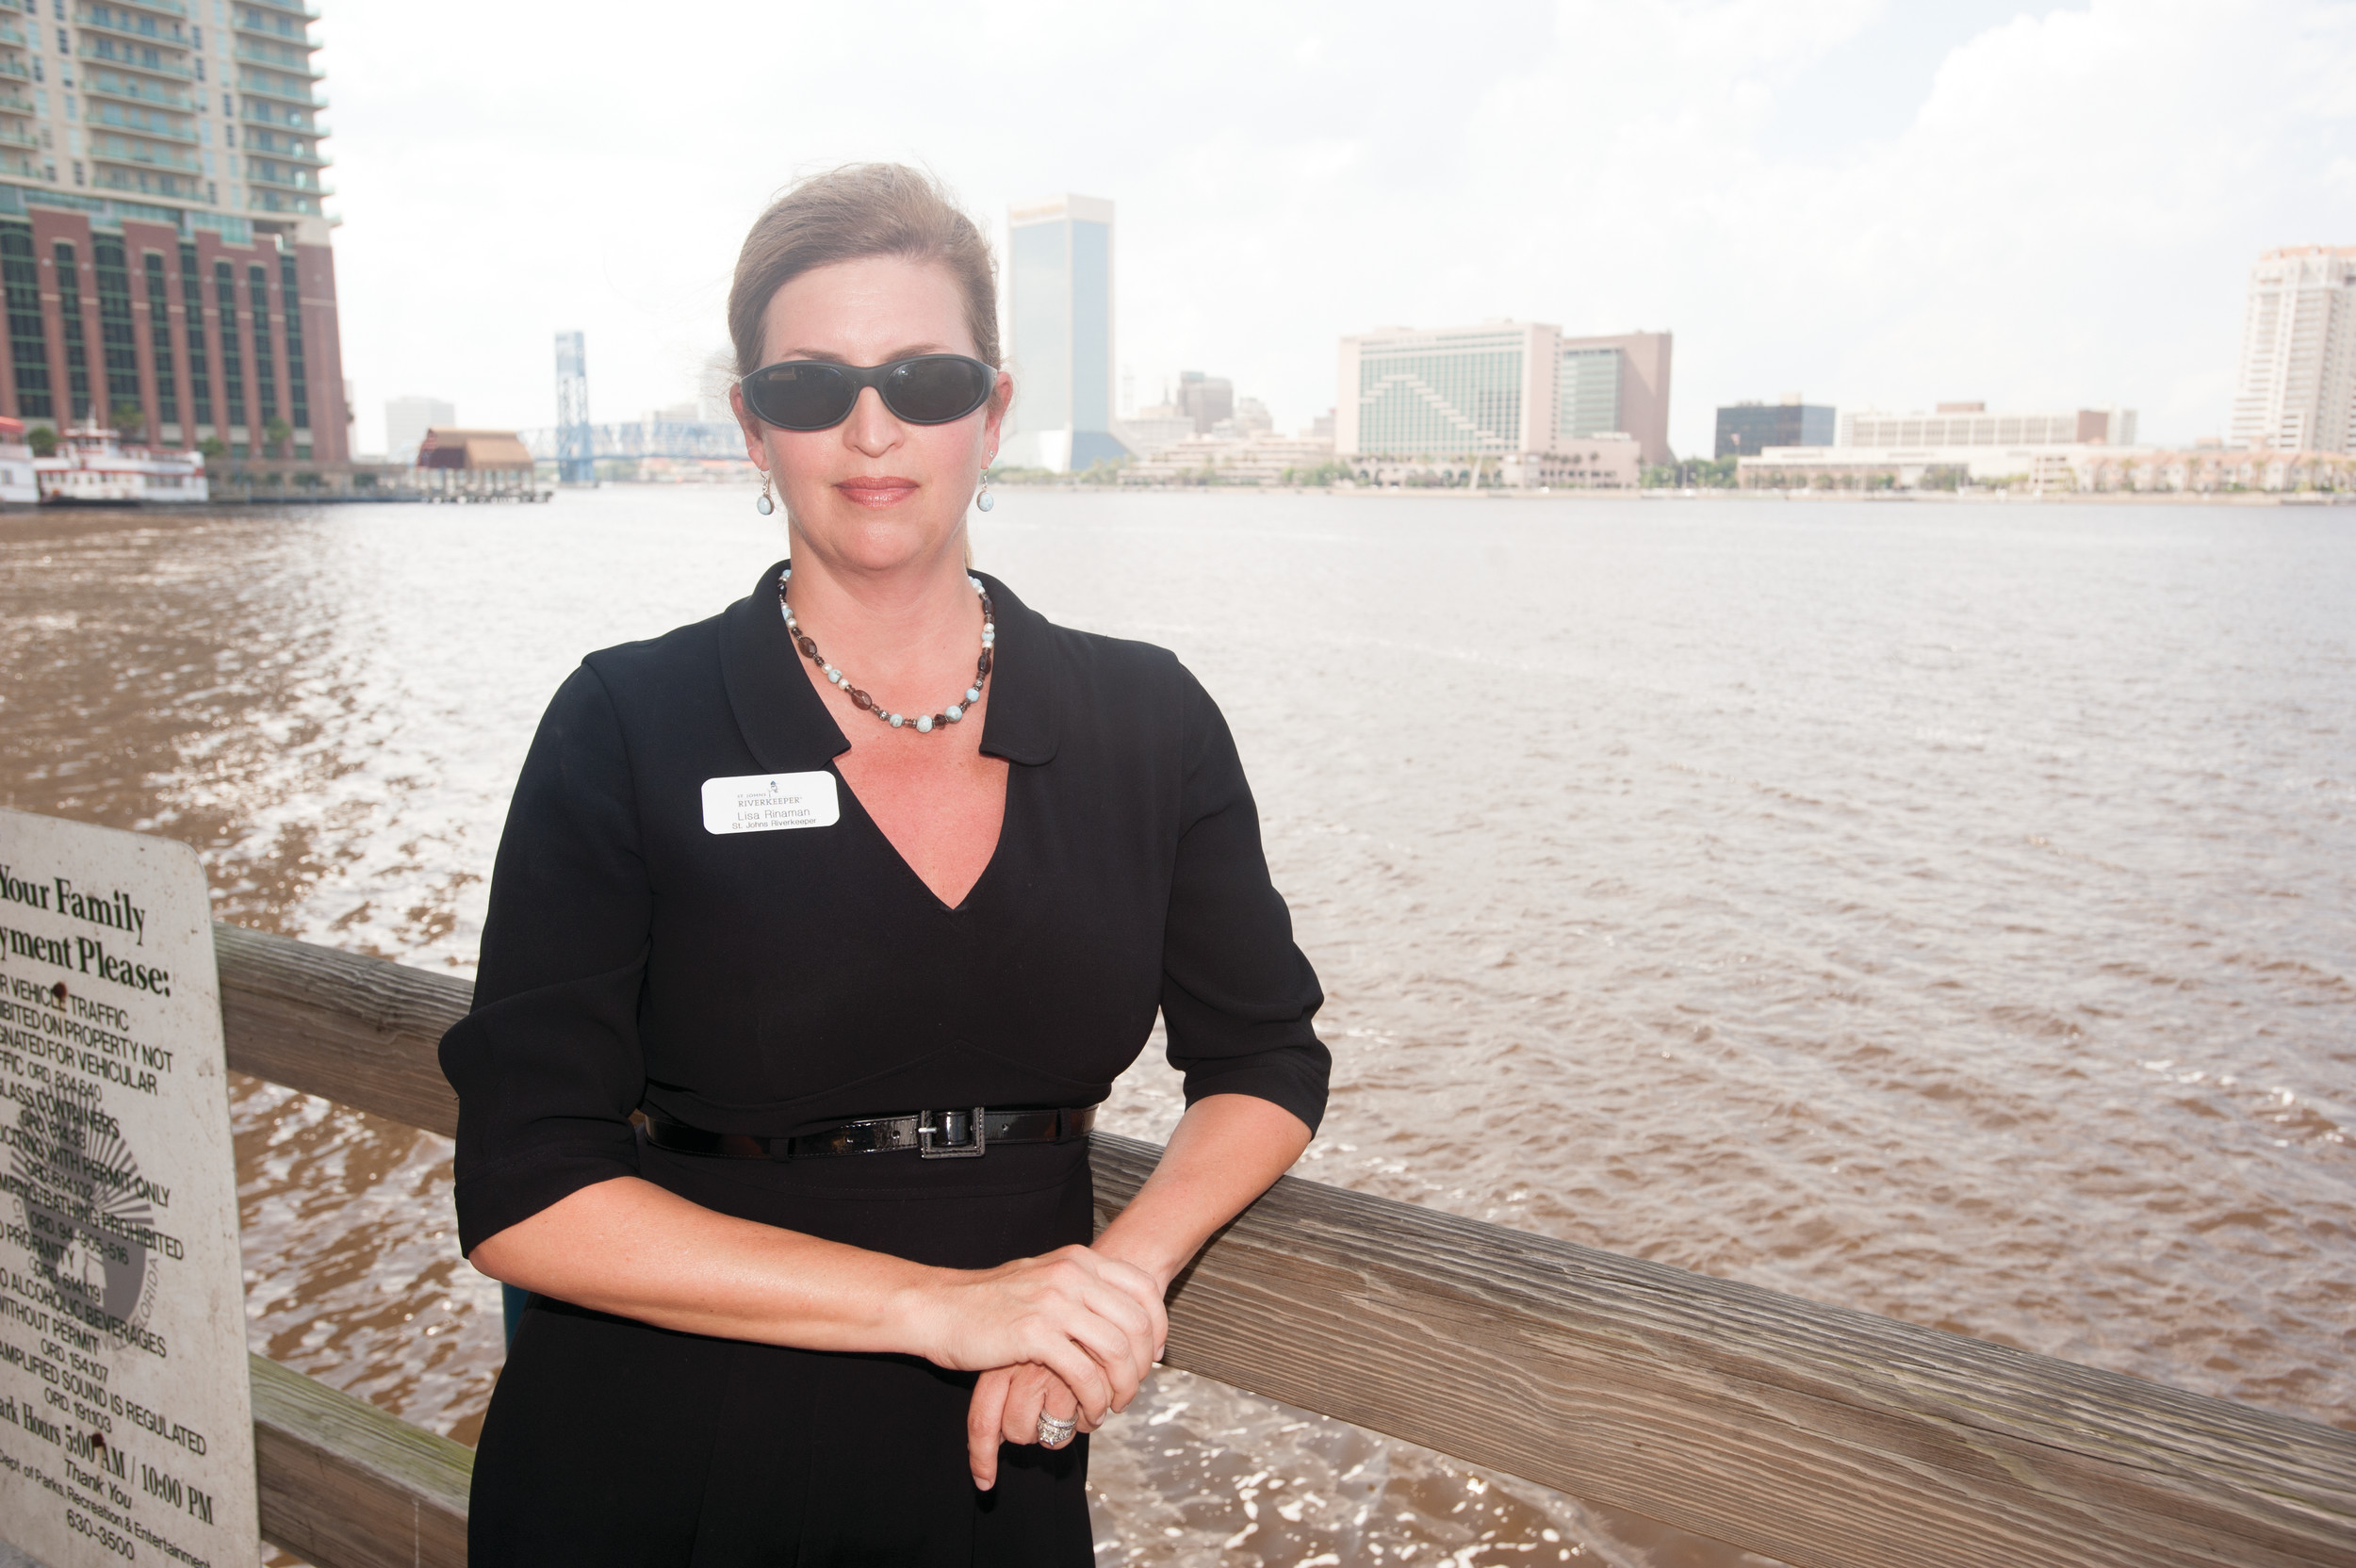 St. Johns Riverkeeper Lisa Rinaman is keeping a close eye on the environmental impact of dredging the St. Johns River channel.